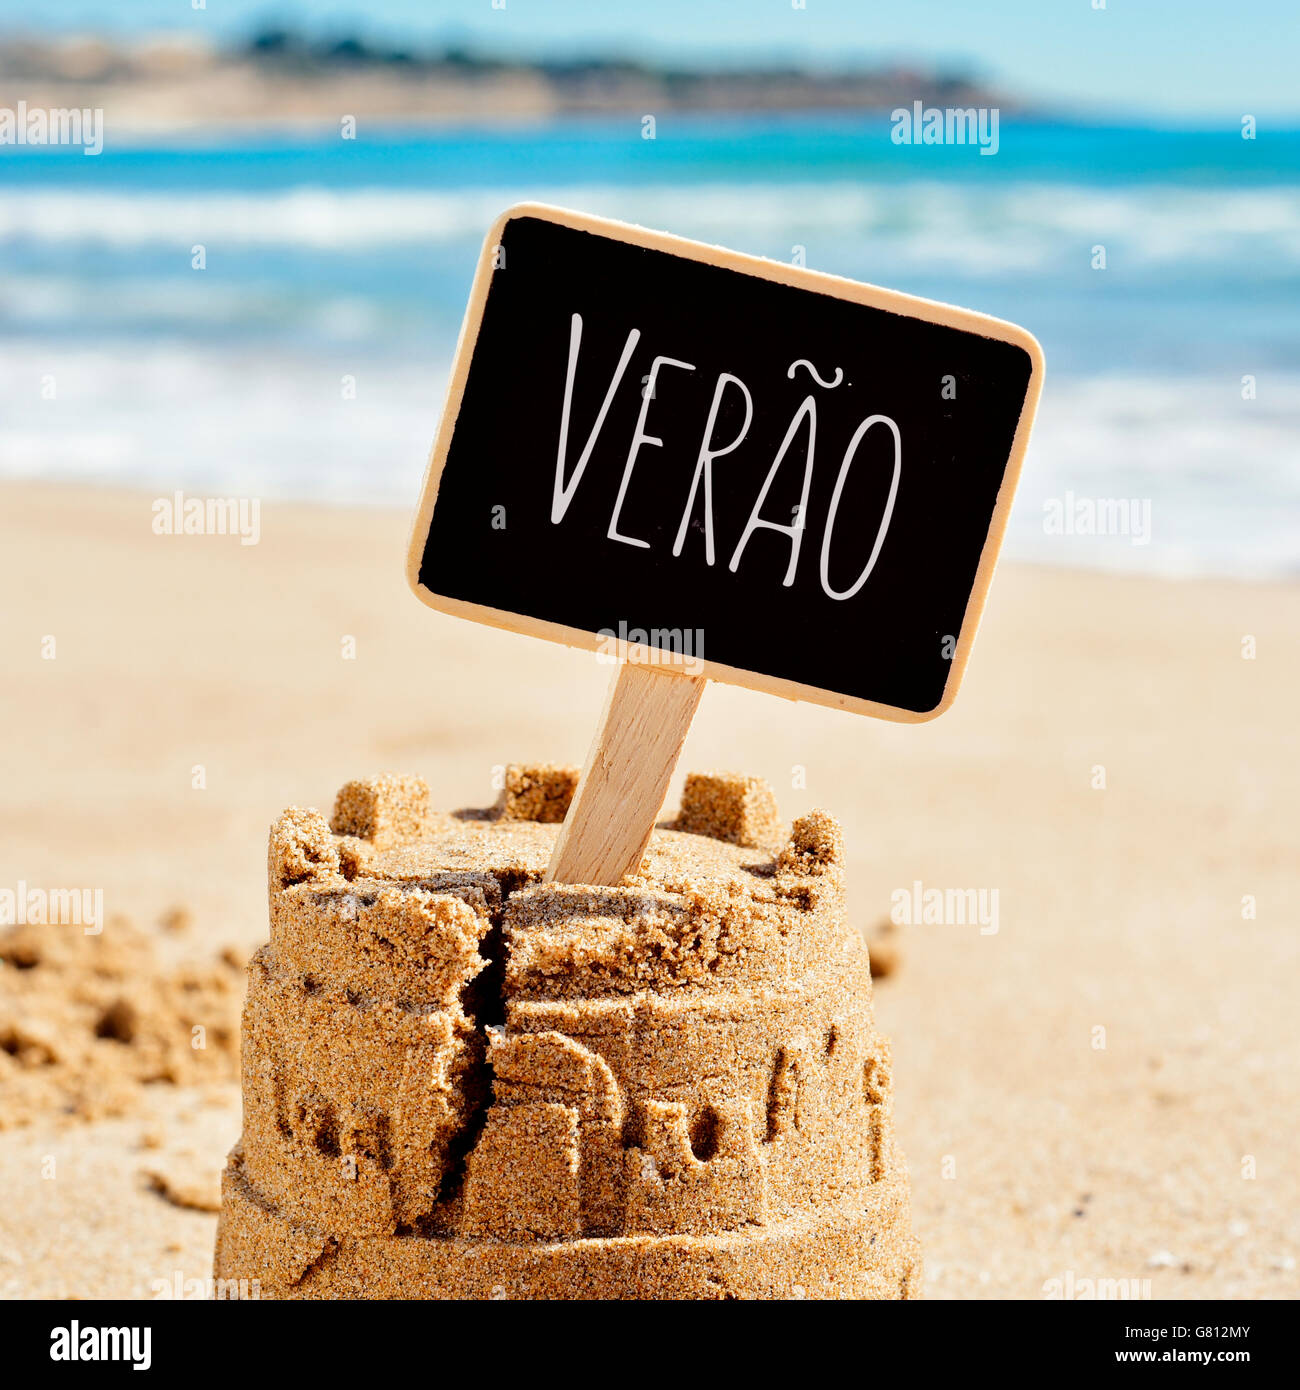 closeup of a sandcastle on the sand of a beach topped with a black signboard with the text verao, summer in Portuguese Stock Photo